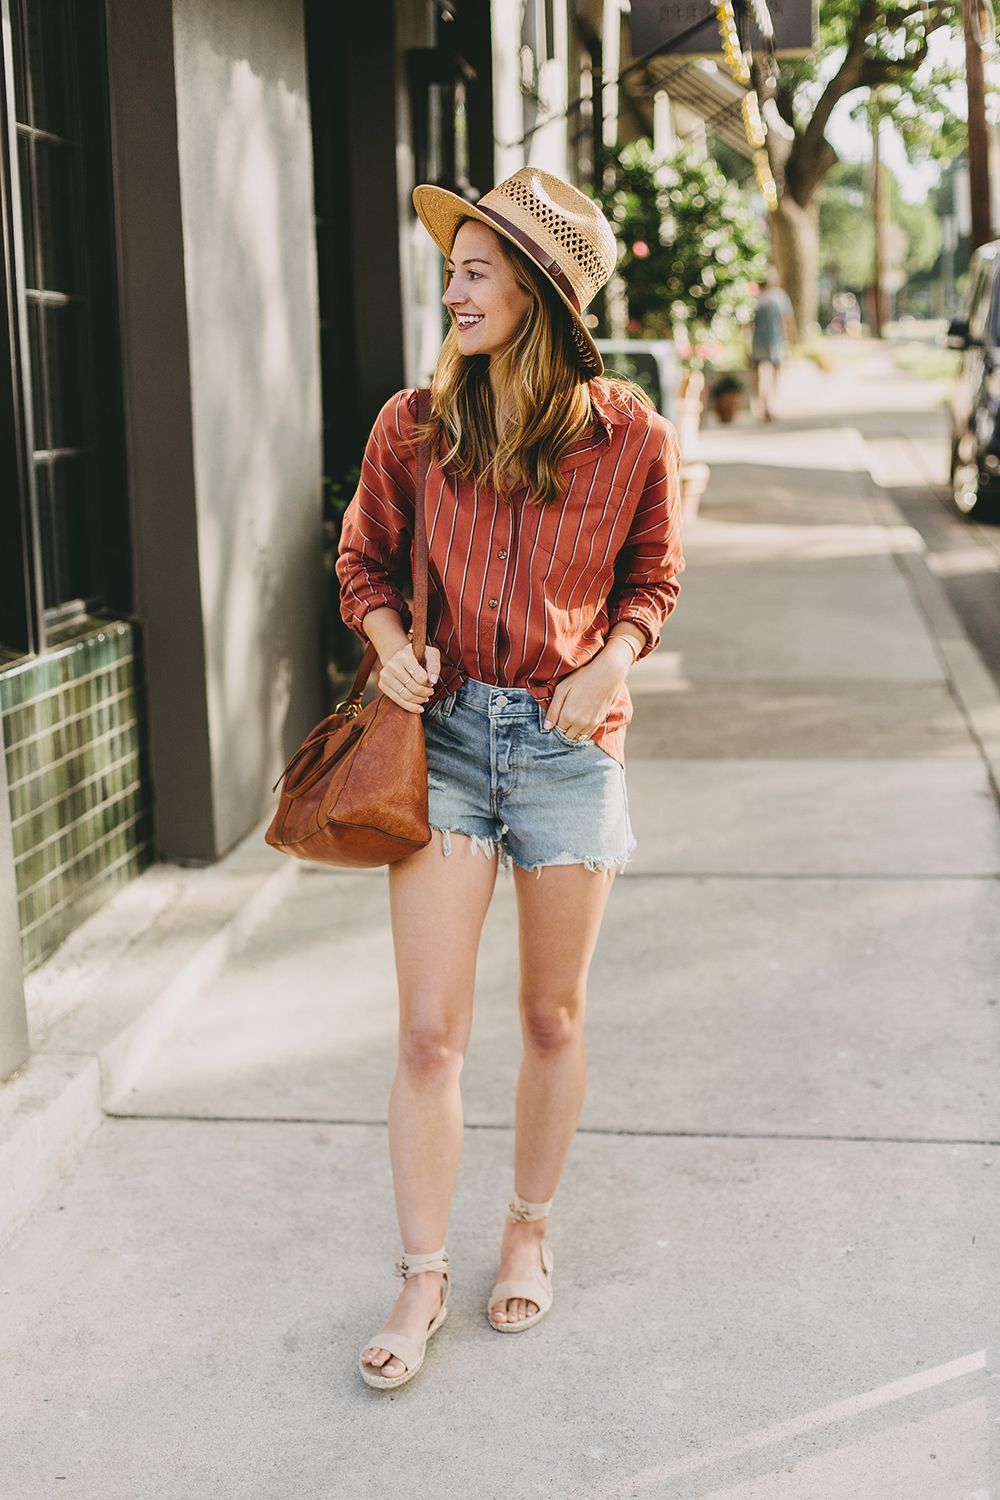 Livvyland is a top fashion blog based in Austin, TX